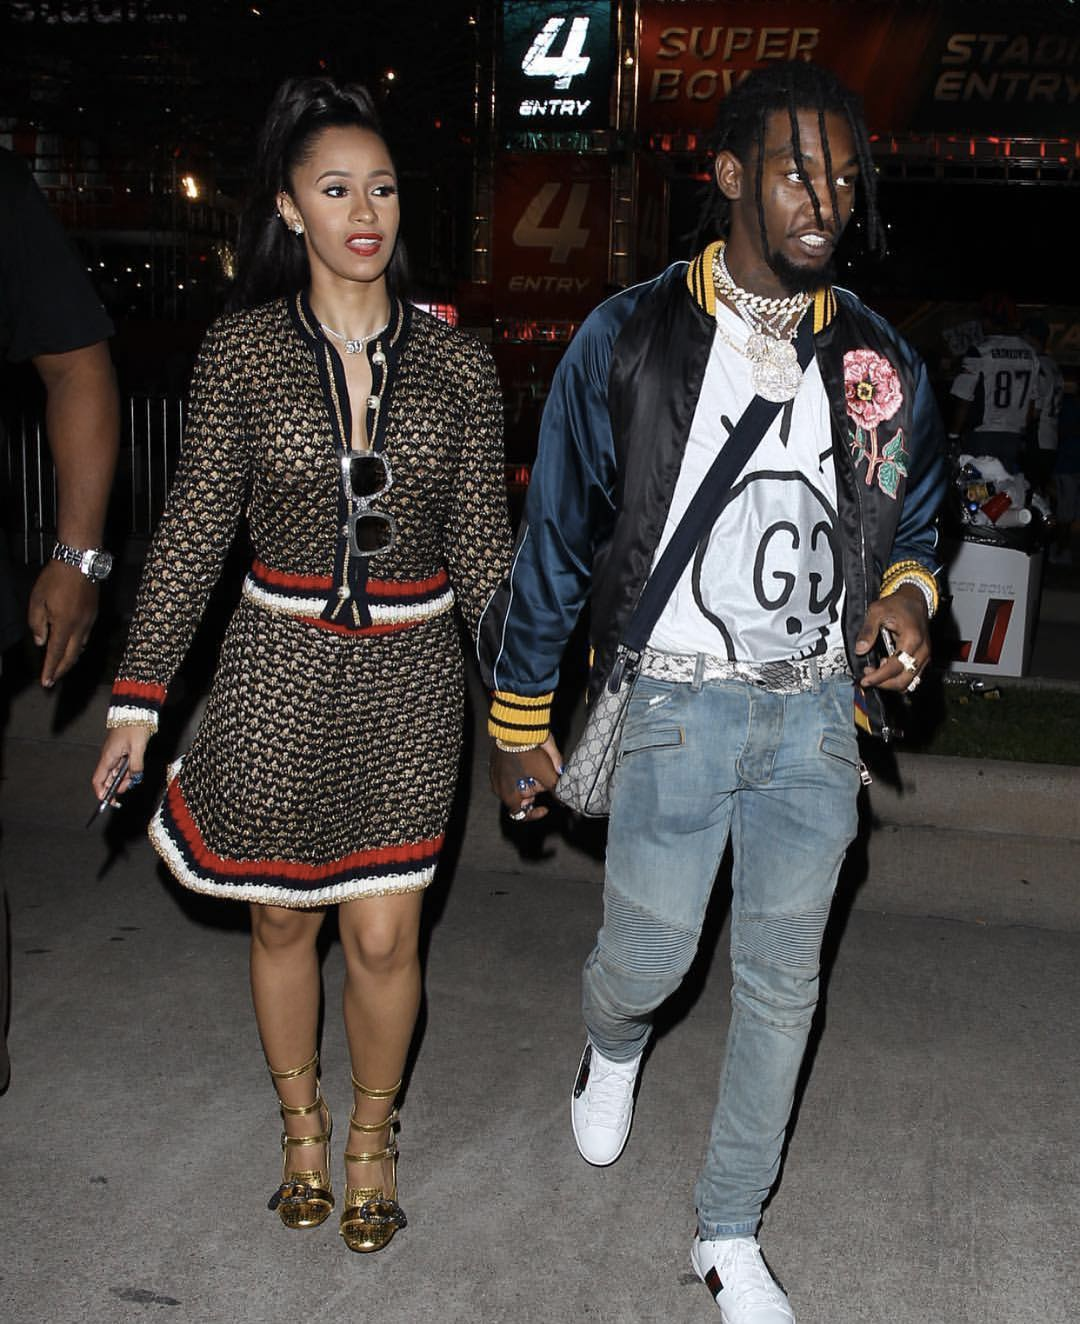 (via: Looklive)    Cardi B spotted with Migos member Offset in a Gucci Lurex Blend matching set